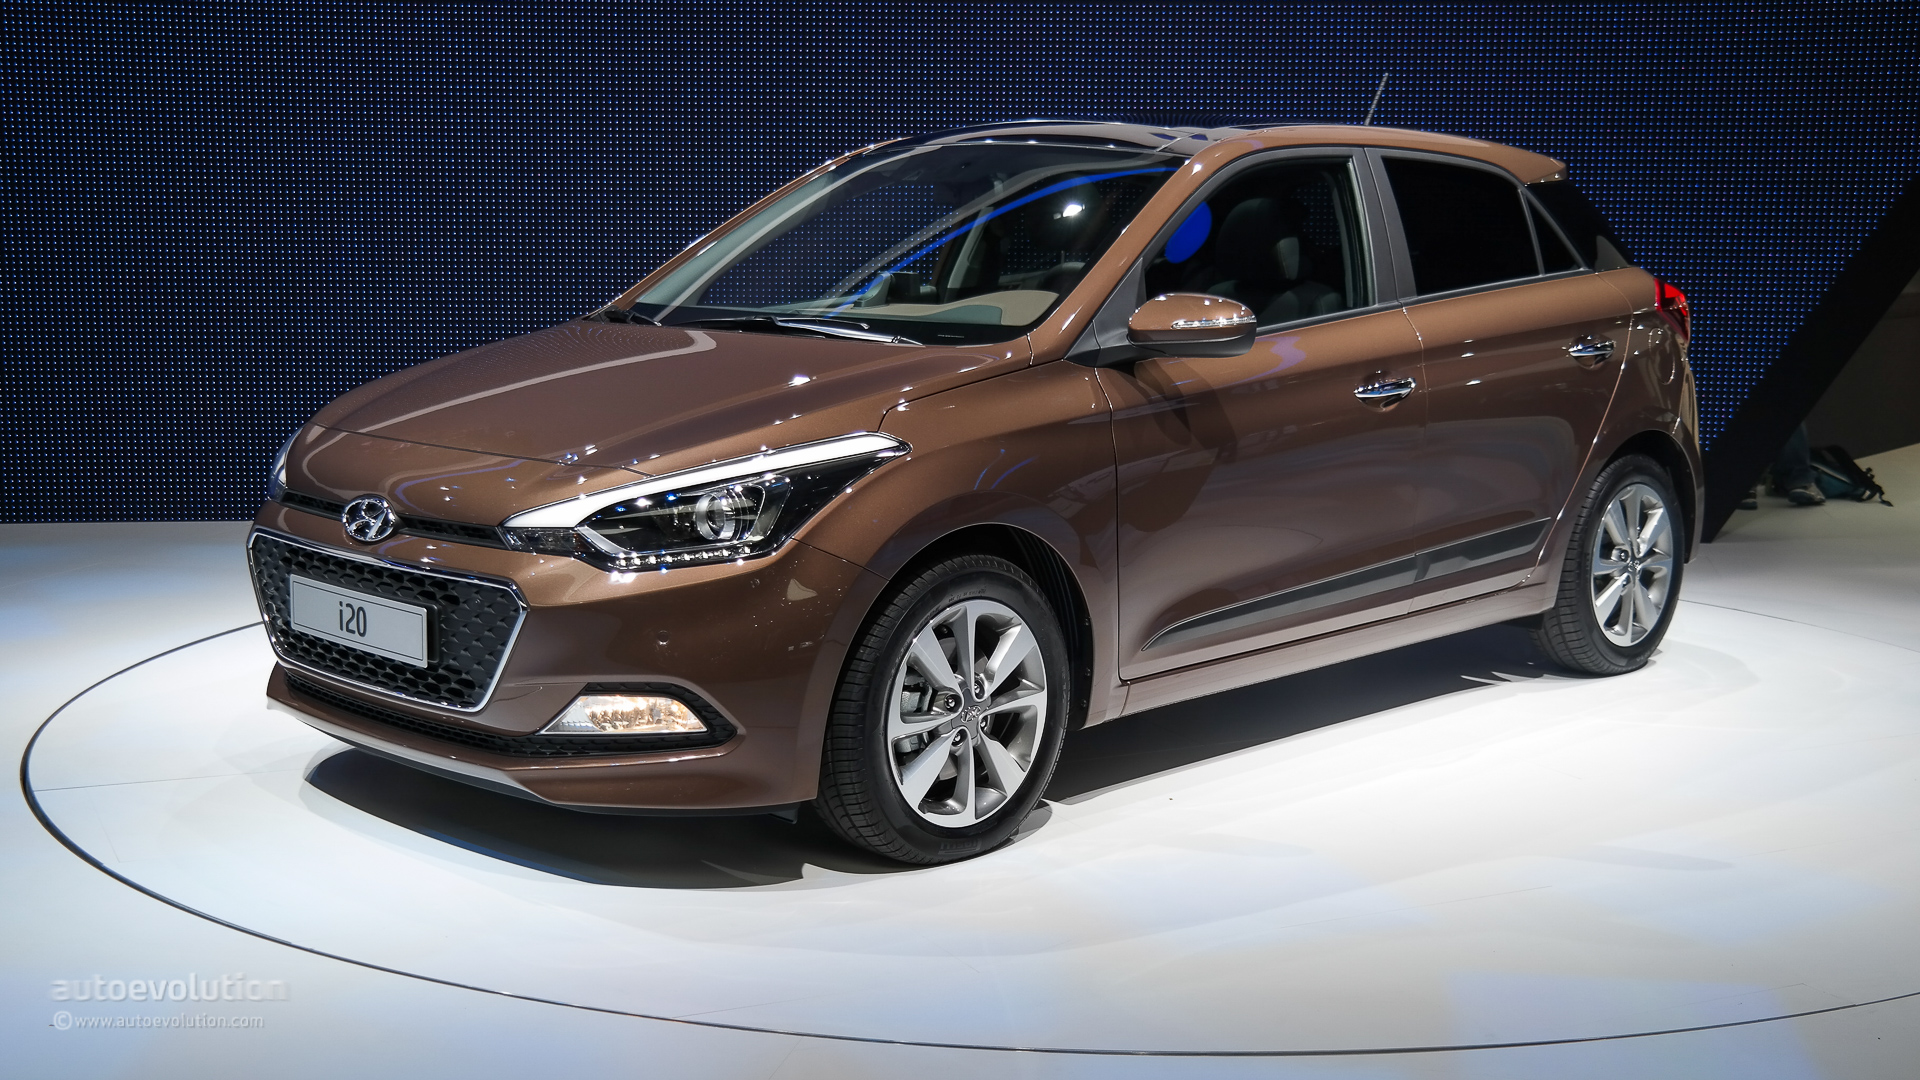 2015 Hyundai I20 Enters Production First Deliveries